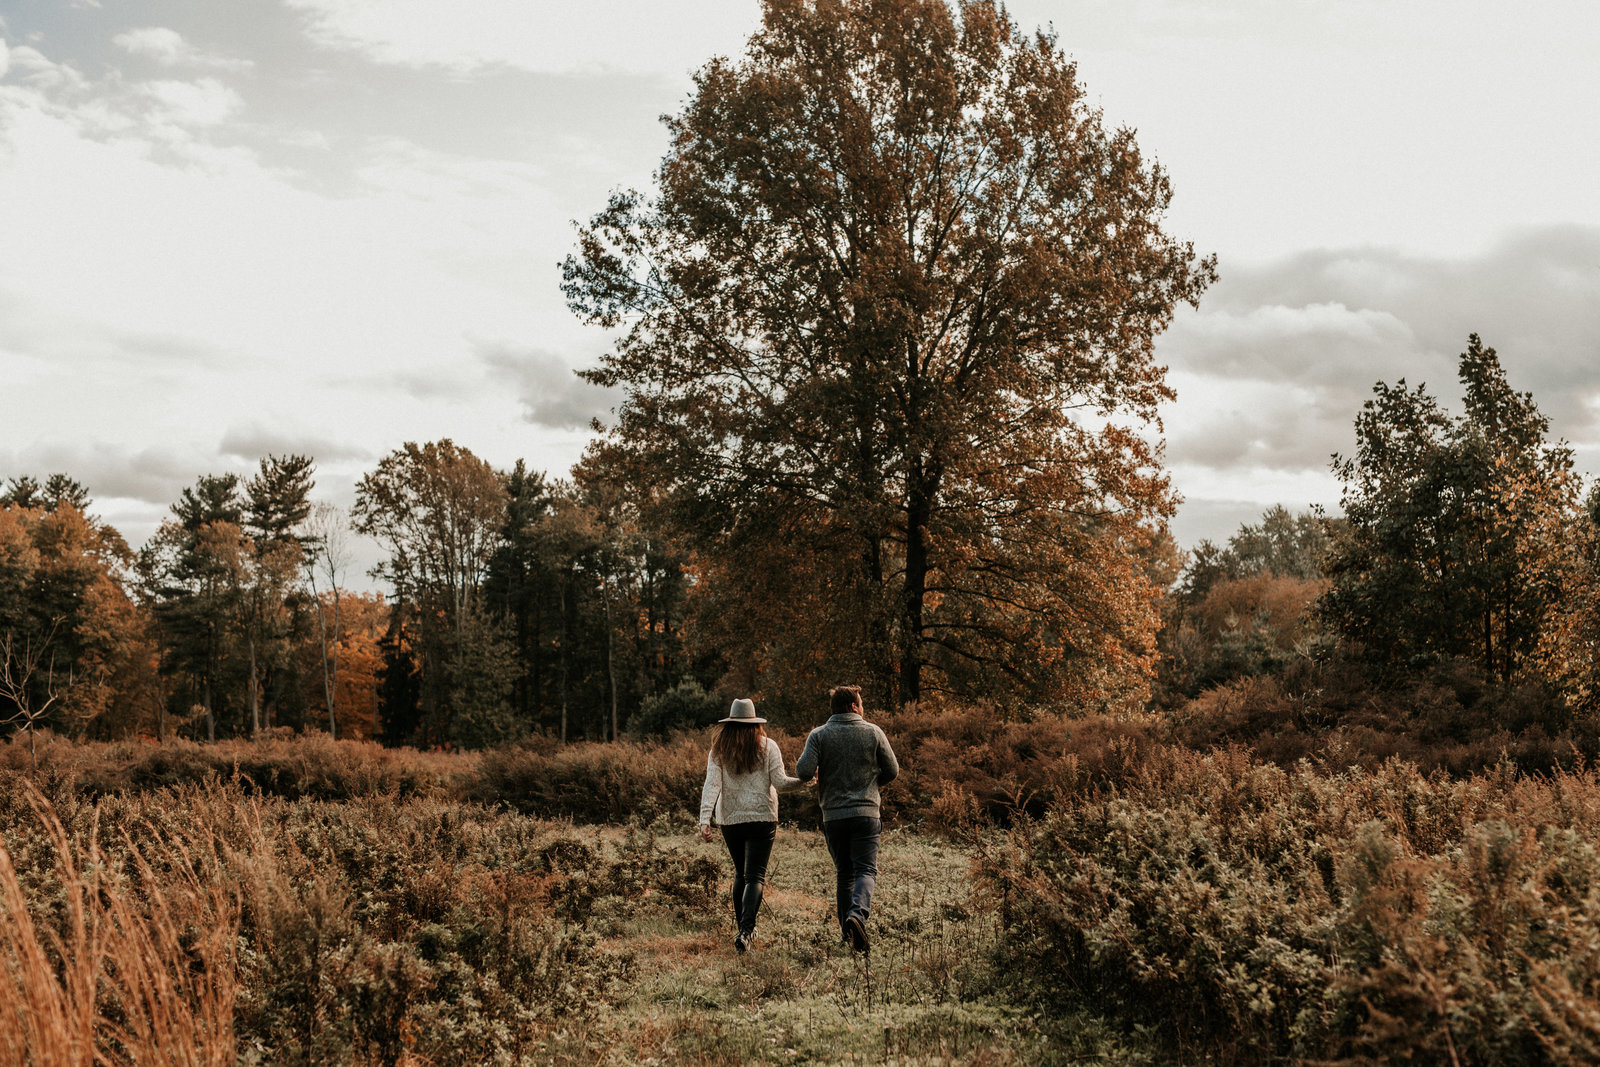 Meghan_Chris_Engagement_Session_10.29.18-134